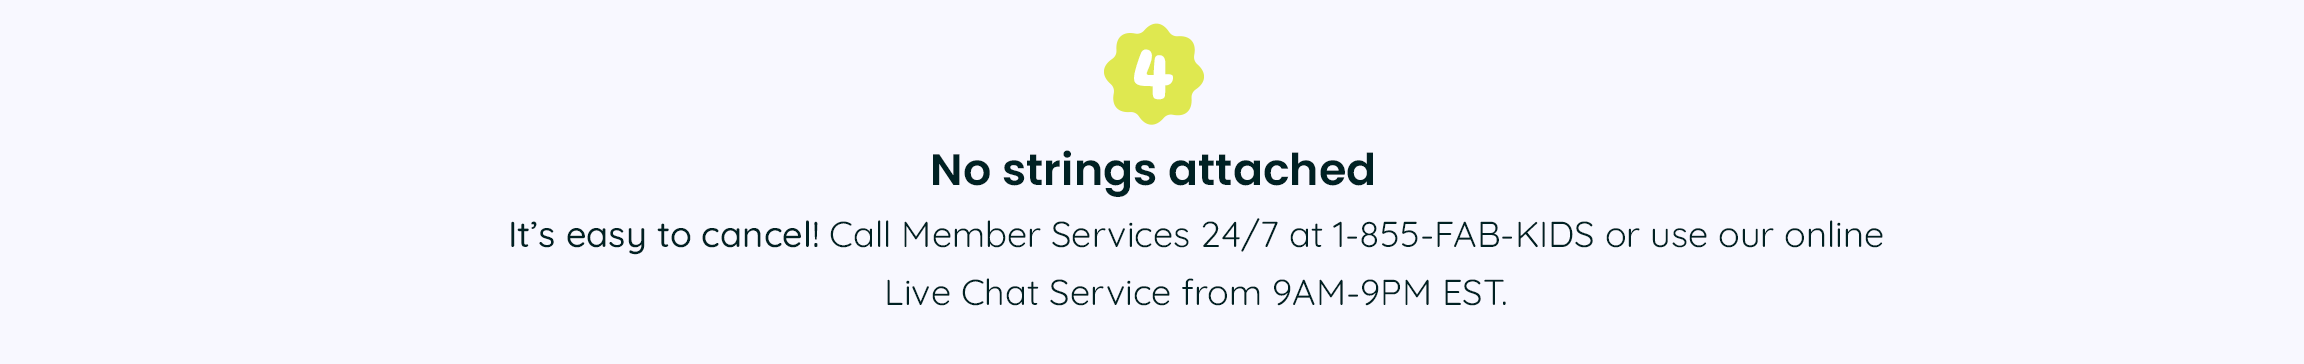 4. No strings attached - It's easy to cancel! Call Member Services 24/7 at 1-855-322-5437 or use our online Live Chat Service from 9AM-9PM EST.